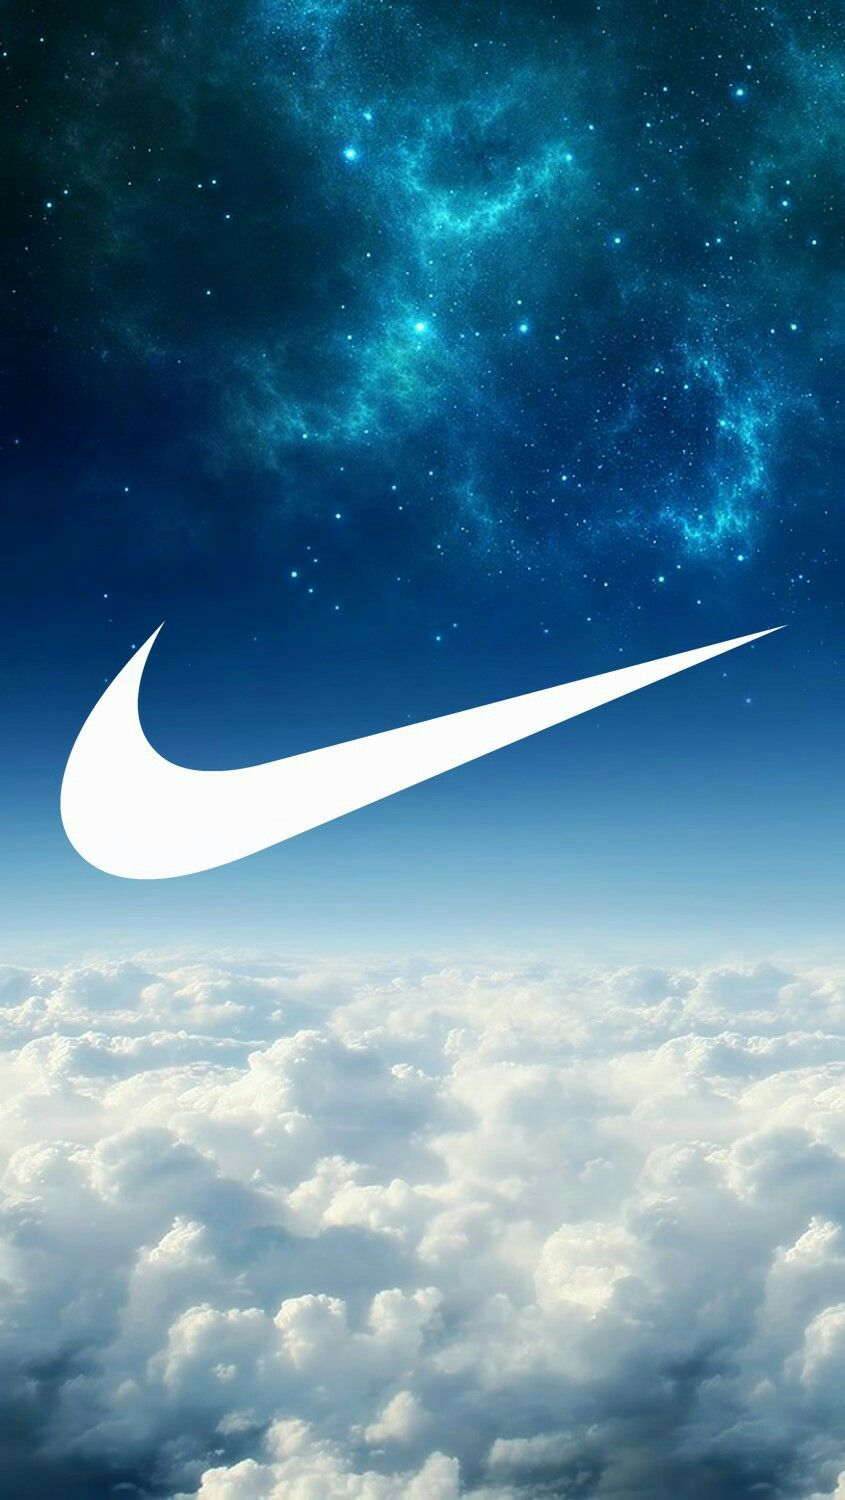 Nike wallpaper backgrounds